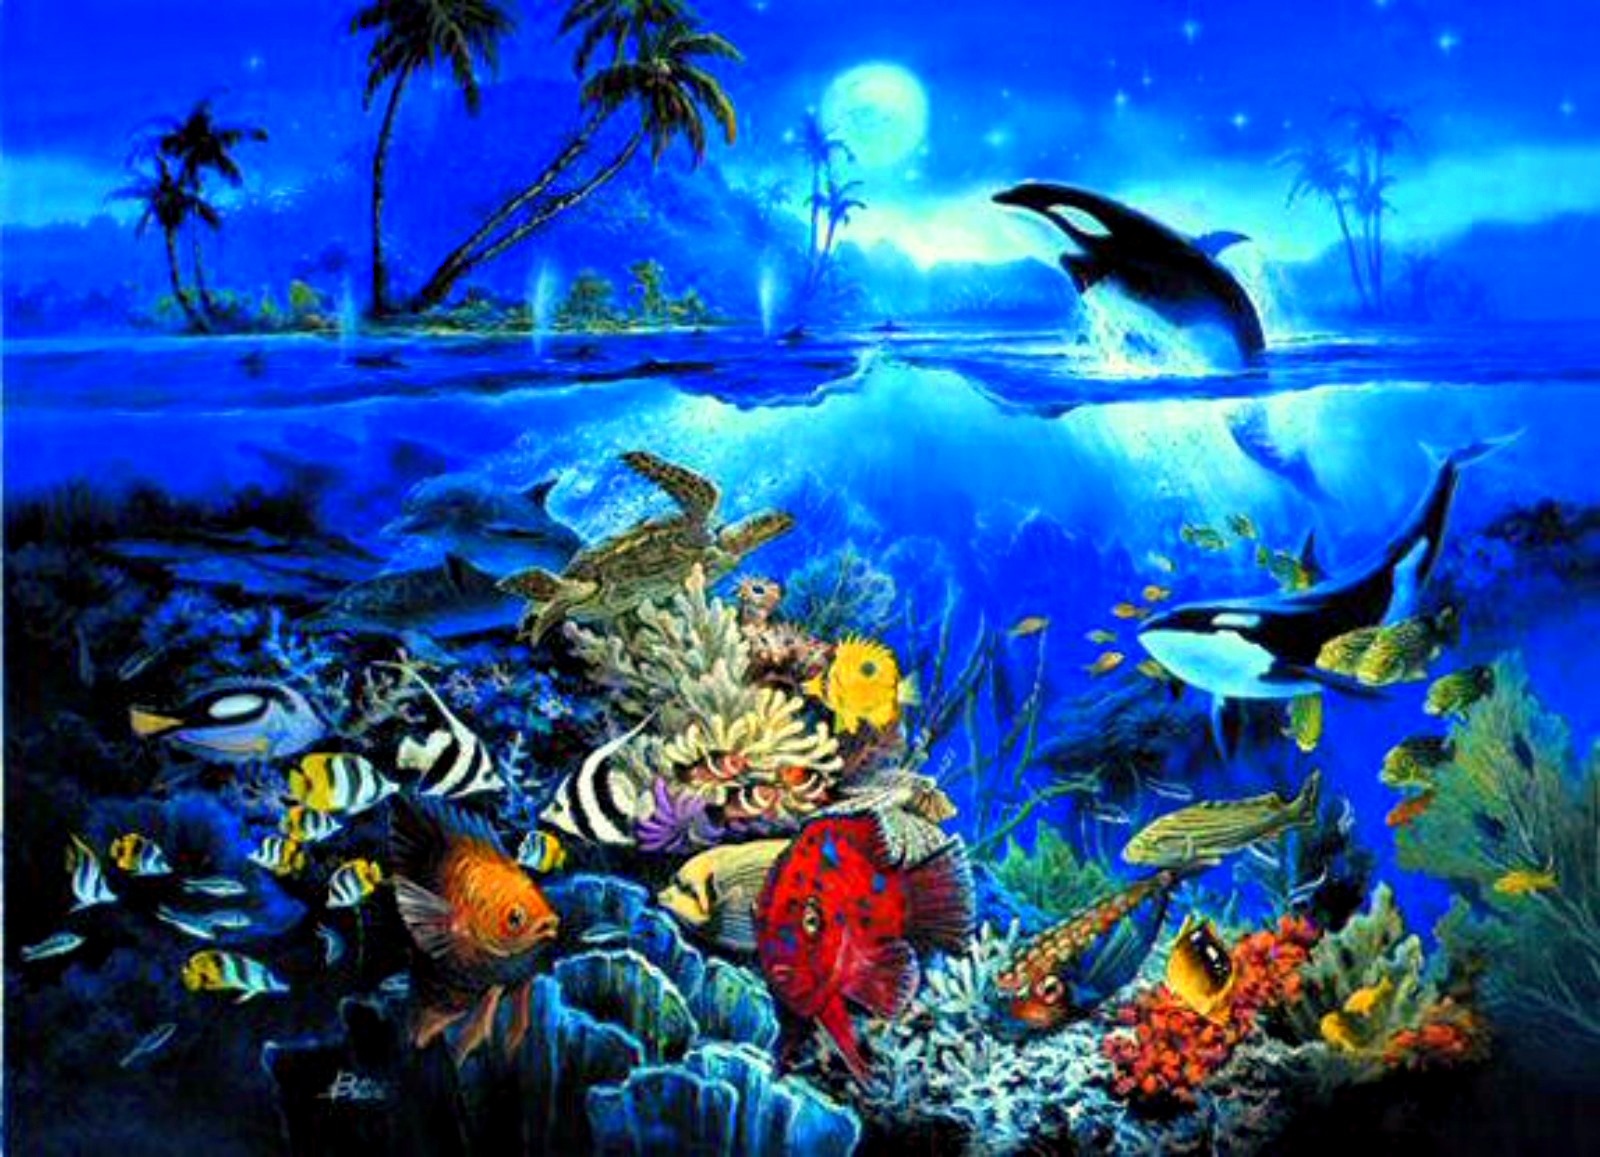 Underwater background wallpapersafari - Underwater desktop background ...